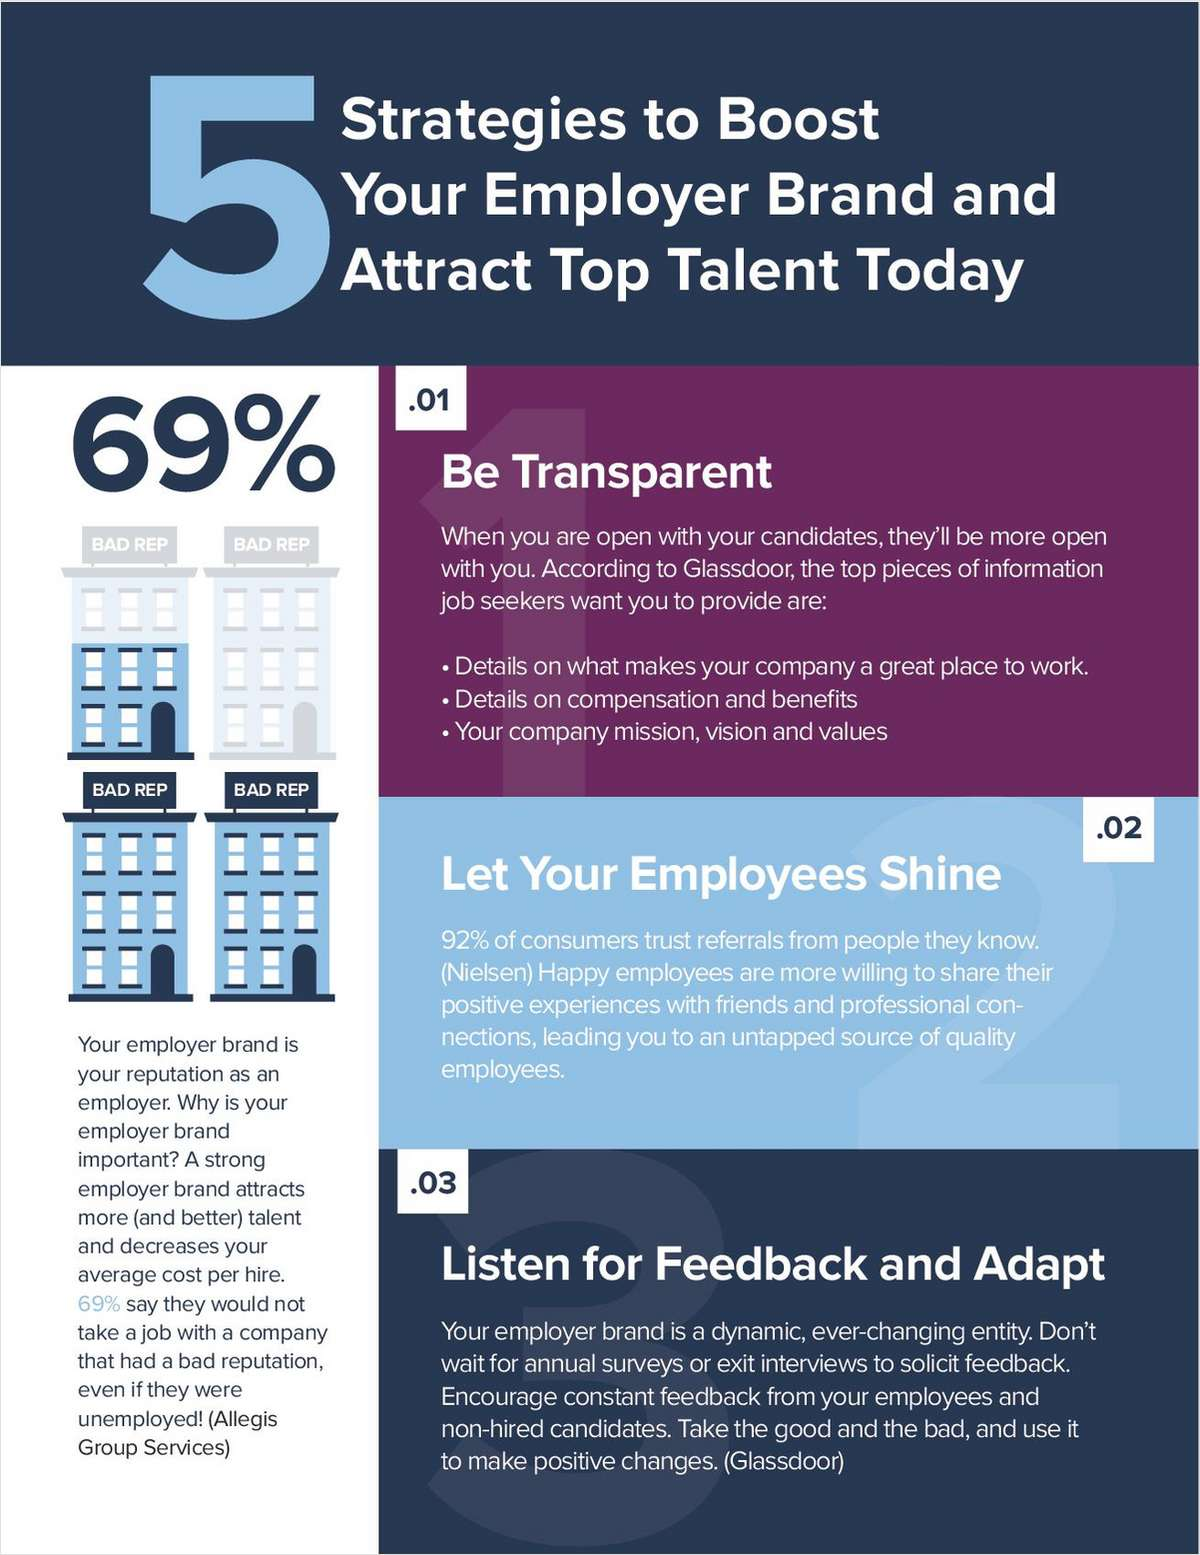 5 Strategies to Boost Your Employer Brand & Attract Top Talent Today